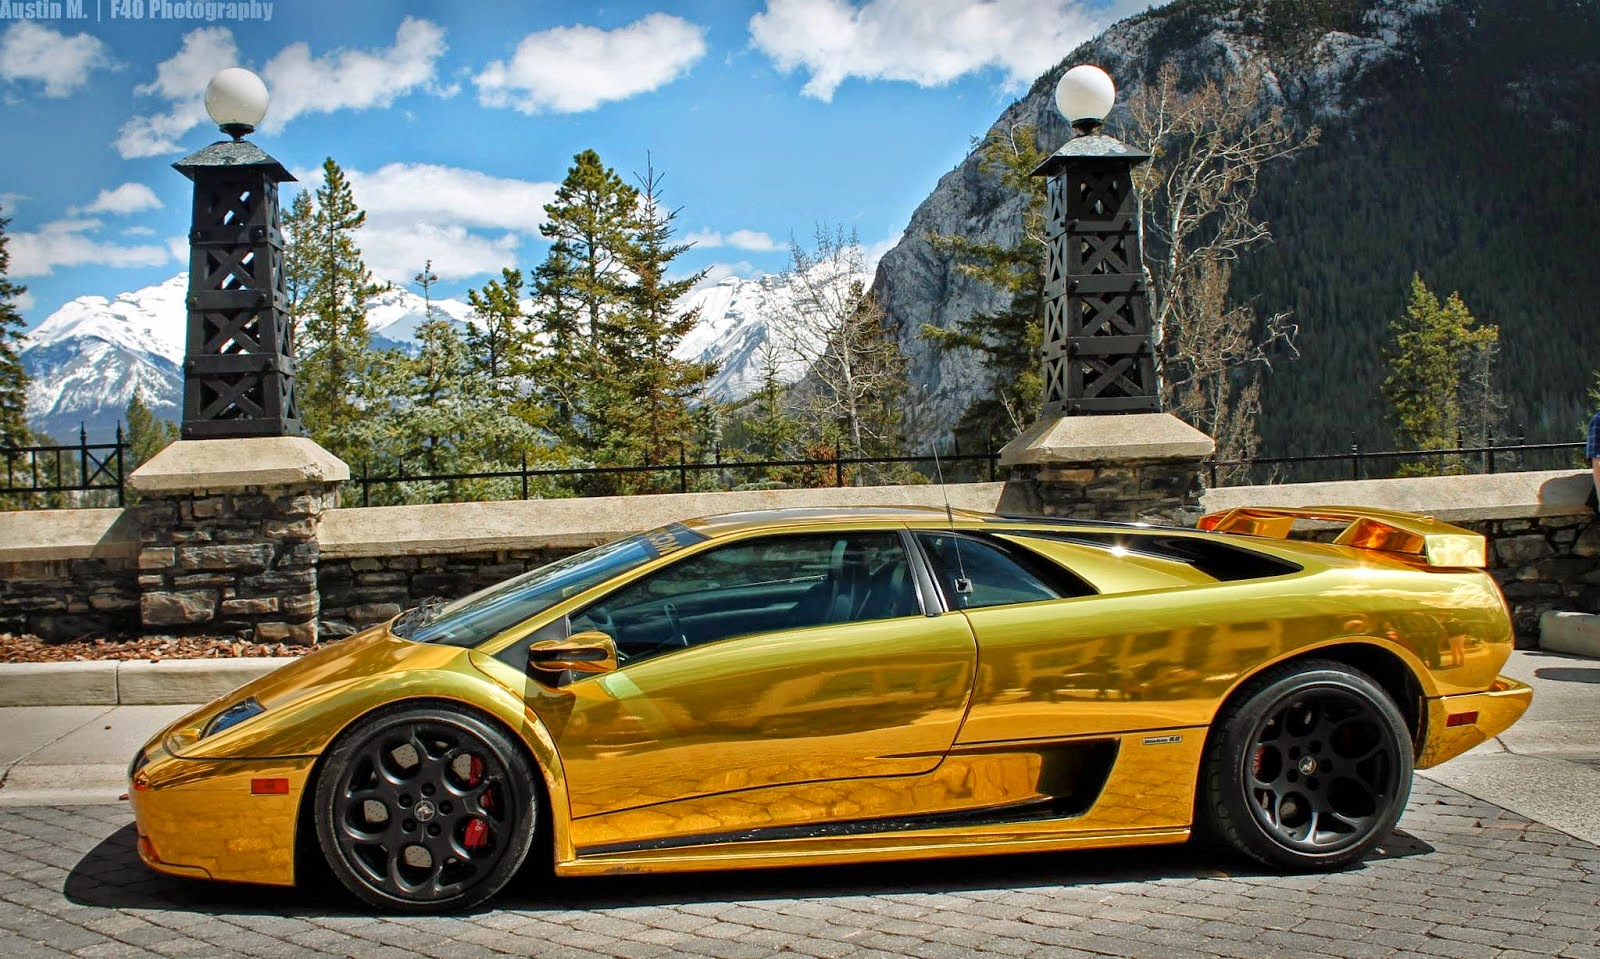 Tunned Ferrari F40 & The Gold Lamborghini Diablo Spotted in Alberta ...